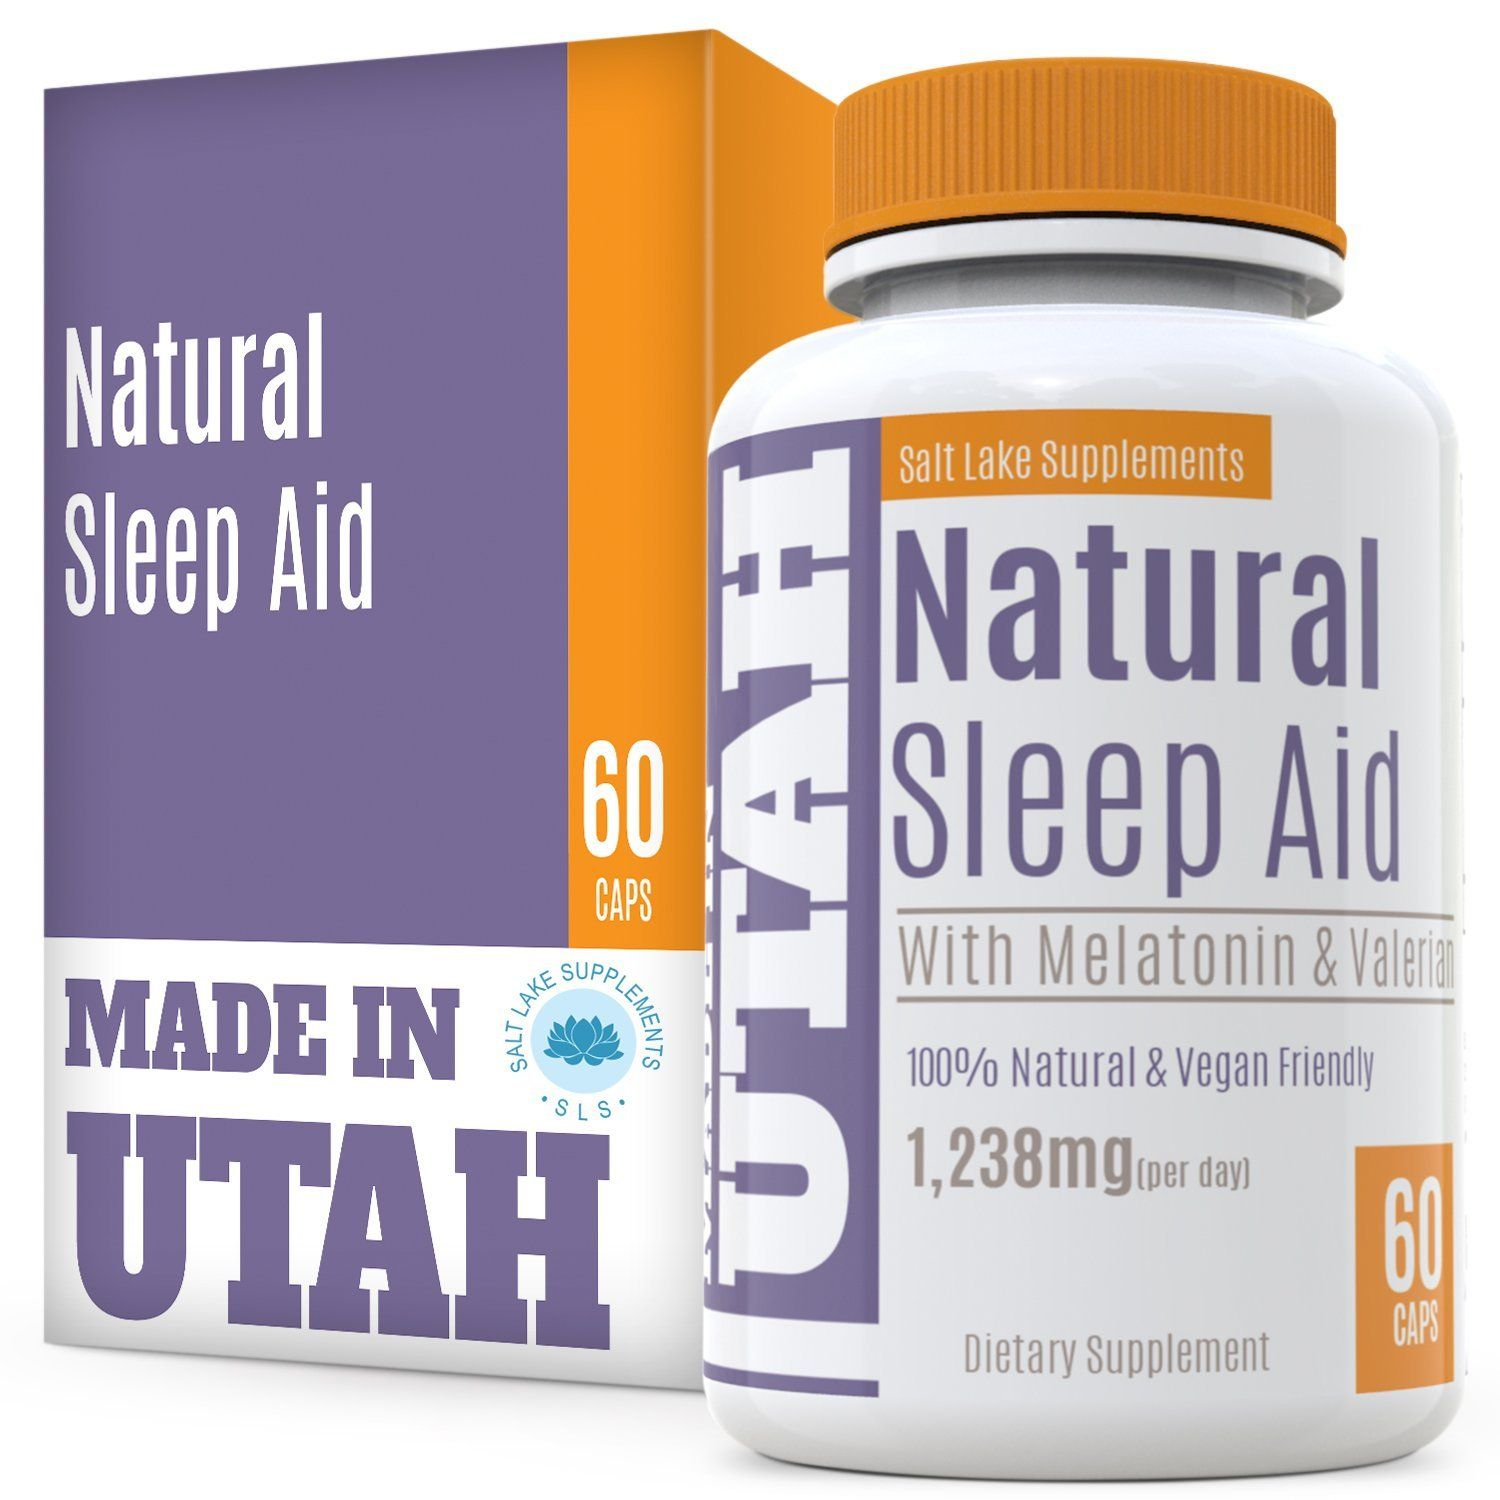 Natural Sleep Aid Is An All-Natural Sleep Formula That Combines Melatonin, Valerian Root And Non-Addictive Extracts Into the Best 100% Safe Sleeping Pill That Will Allow You To Get a Full Night's Rest ** Remarkable product available now. : Herbal Supplements